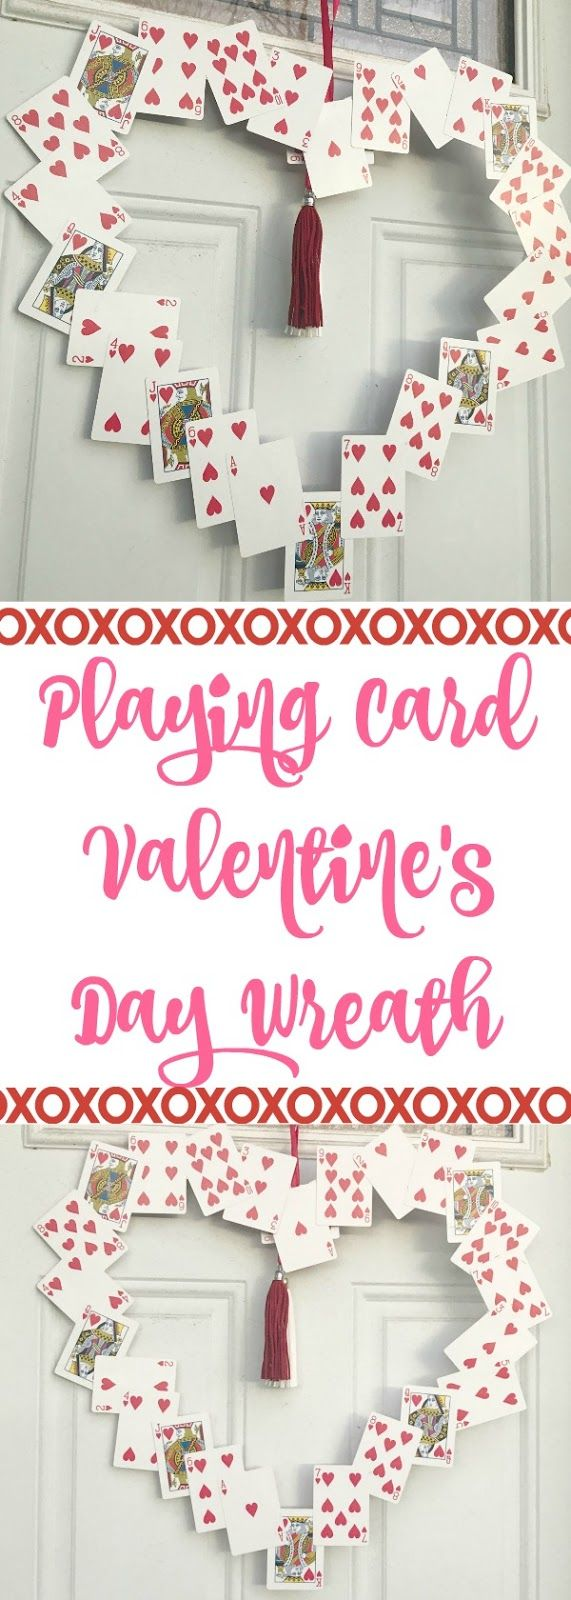 playing card valentines day wreath